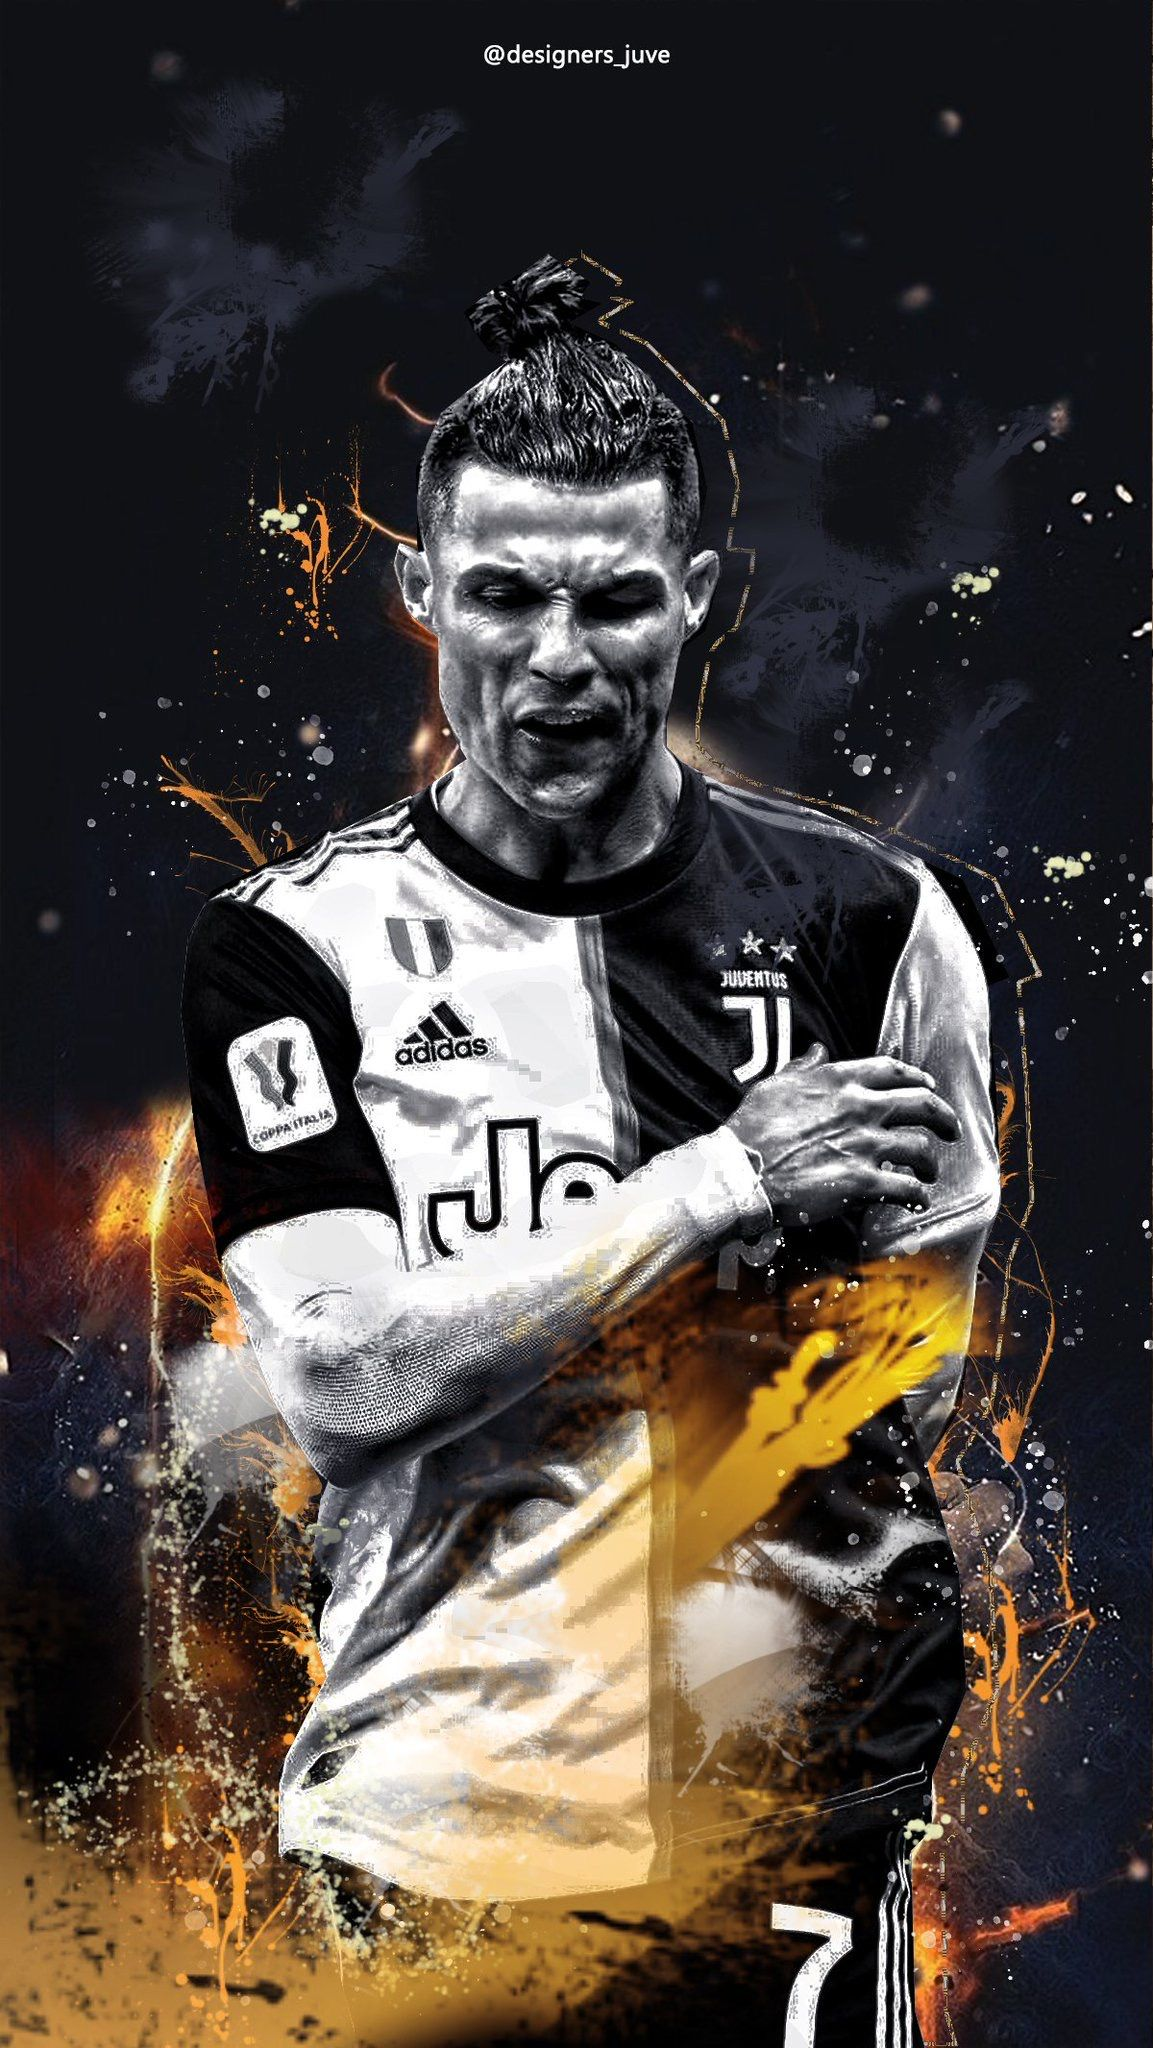 Pin by 𝚞𝚟 on CR7 in 2020 Cristiano ronaldo, Ronaldo